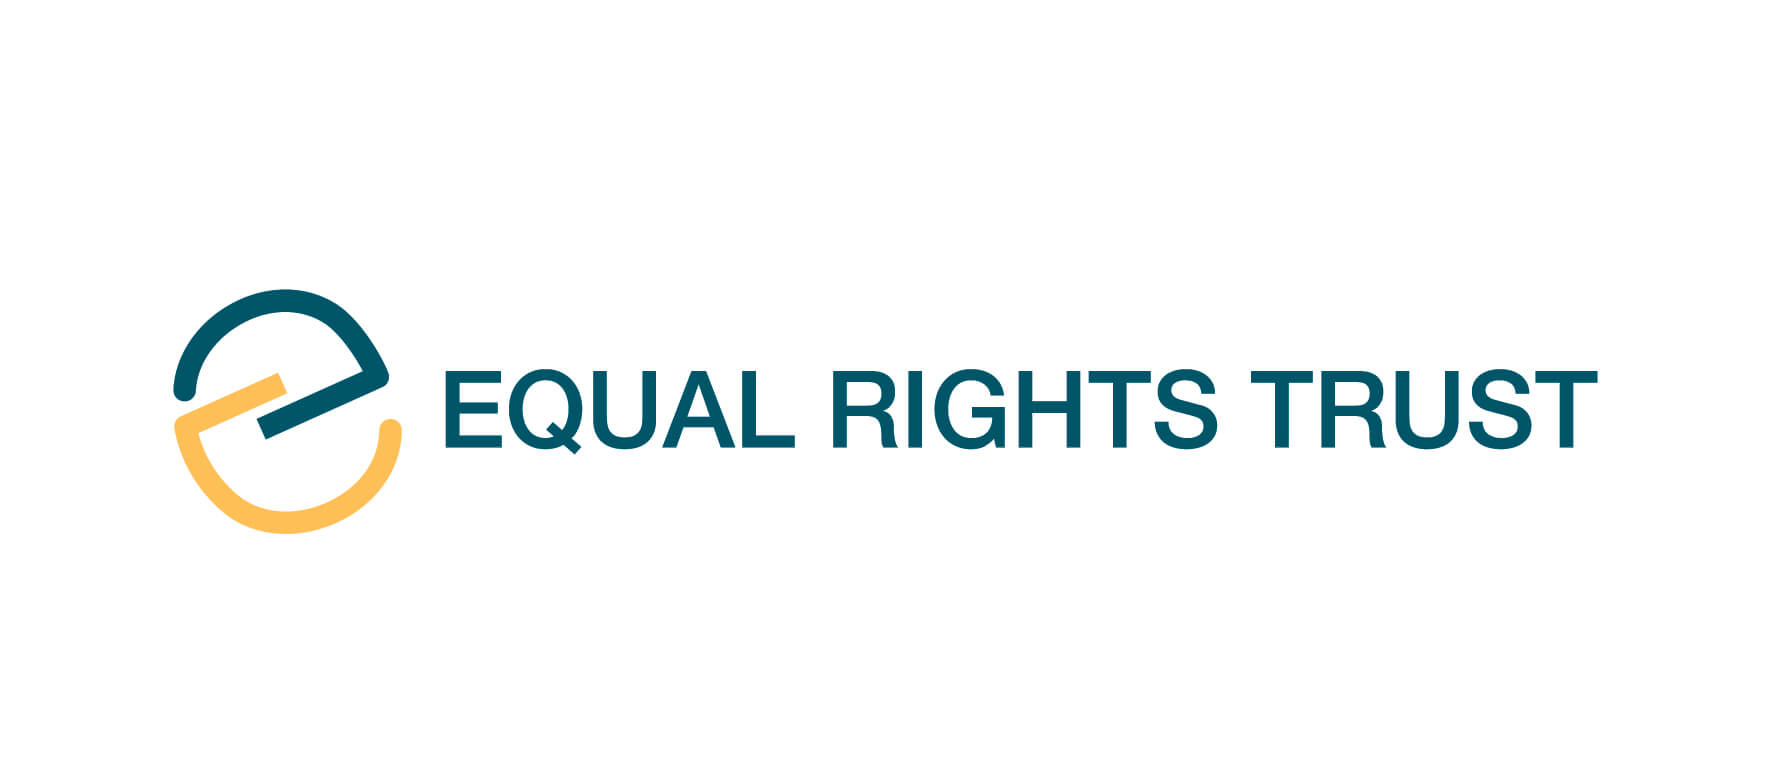 Equal Rights Trust-Join the Board and Nominations Open for Bob Hepple Equality Award